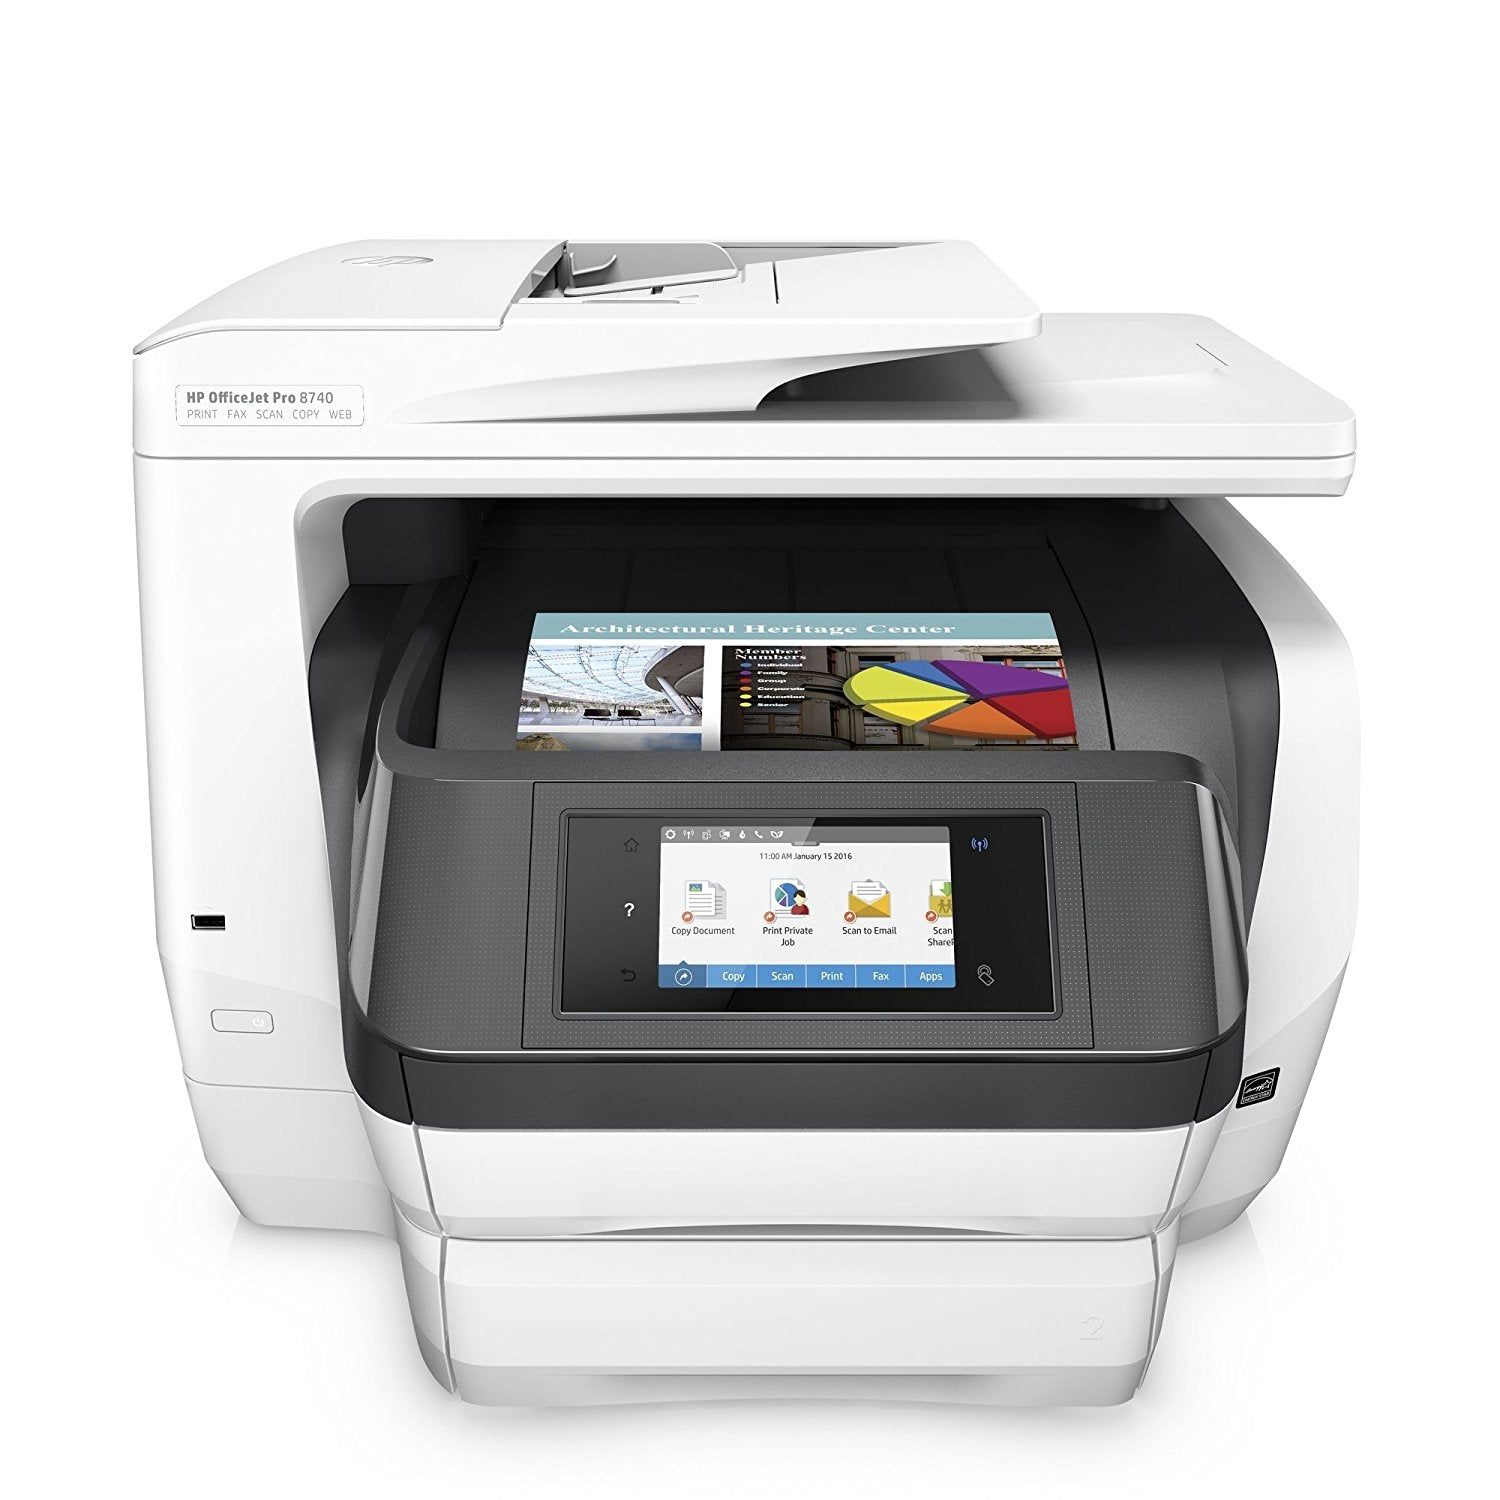 Ideal for small workgroups who need affordable, professional-quality color with fleet management capabilities, all in a space-saving design. Count on remarkable value for your color printing needs. Spend up to 50% less per page compared with lasers, and produce the color and black text output you need to keep your business humming.   Save even more with HP Instant Ink. Get high speeds for two-sided print and scan jobs with laser-like paper handling, and preserve real estate with space-saving HP Print Forward Design. Print longer-without reloading-from an included second paper tray.   Keep business moving from anywhere in the office. Connect to devices with touch-to-print functionality. Easily print when and where you need to from your smartphone, tablet, or notebook PC. Get everything you need to easily manage your printing environment, from drives to deployment to policies. Expand print capabilities with support for HP PCL 6, HP PCL 5c, and HP PS printing options.   Includes 1 year e